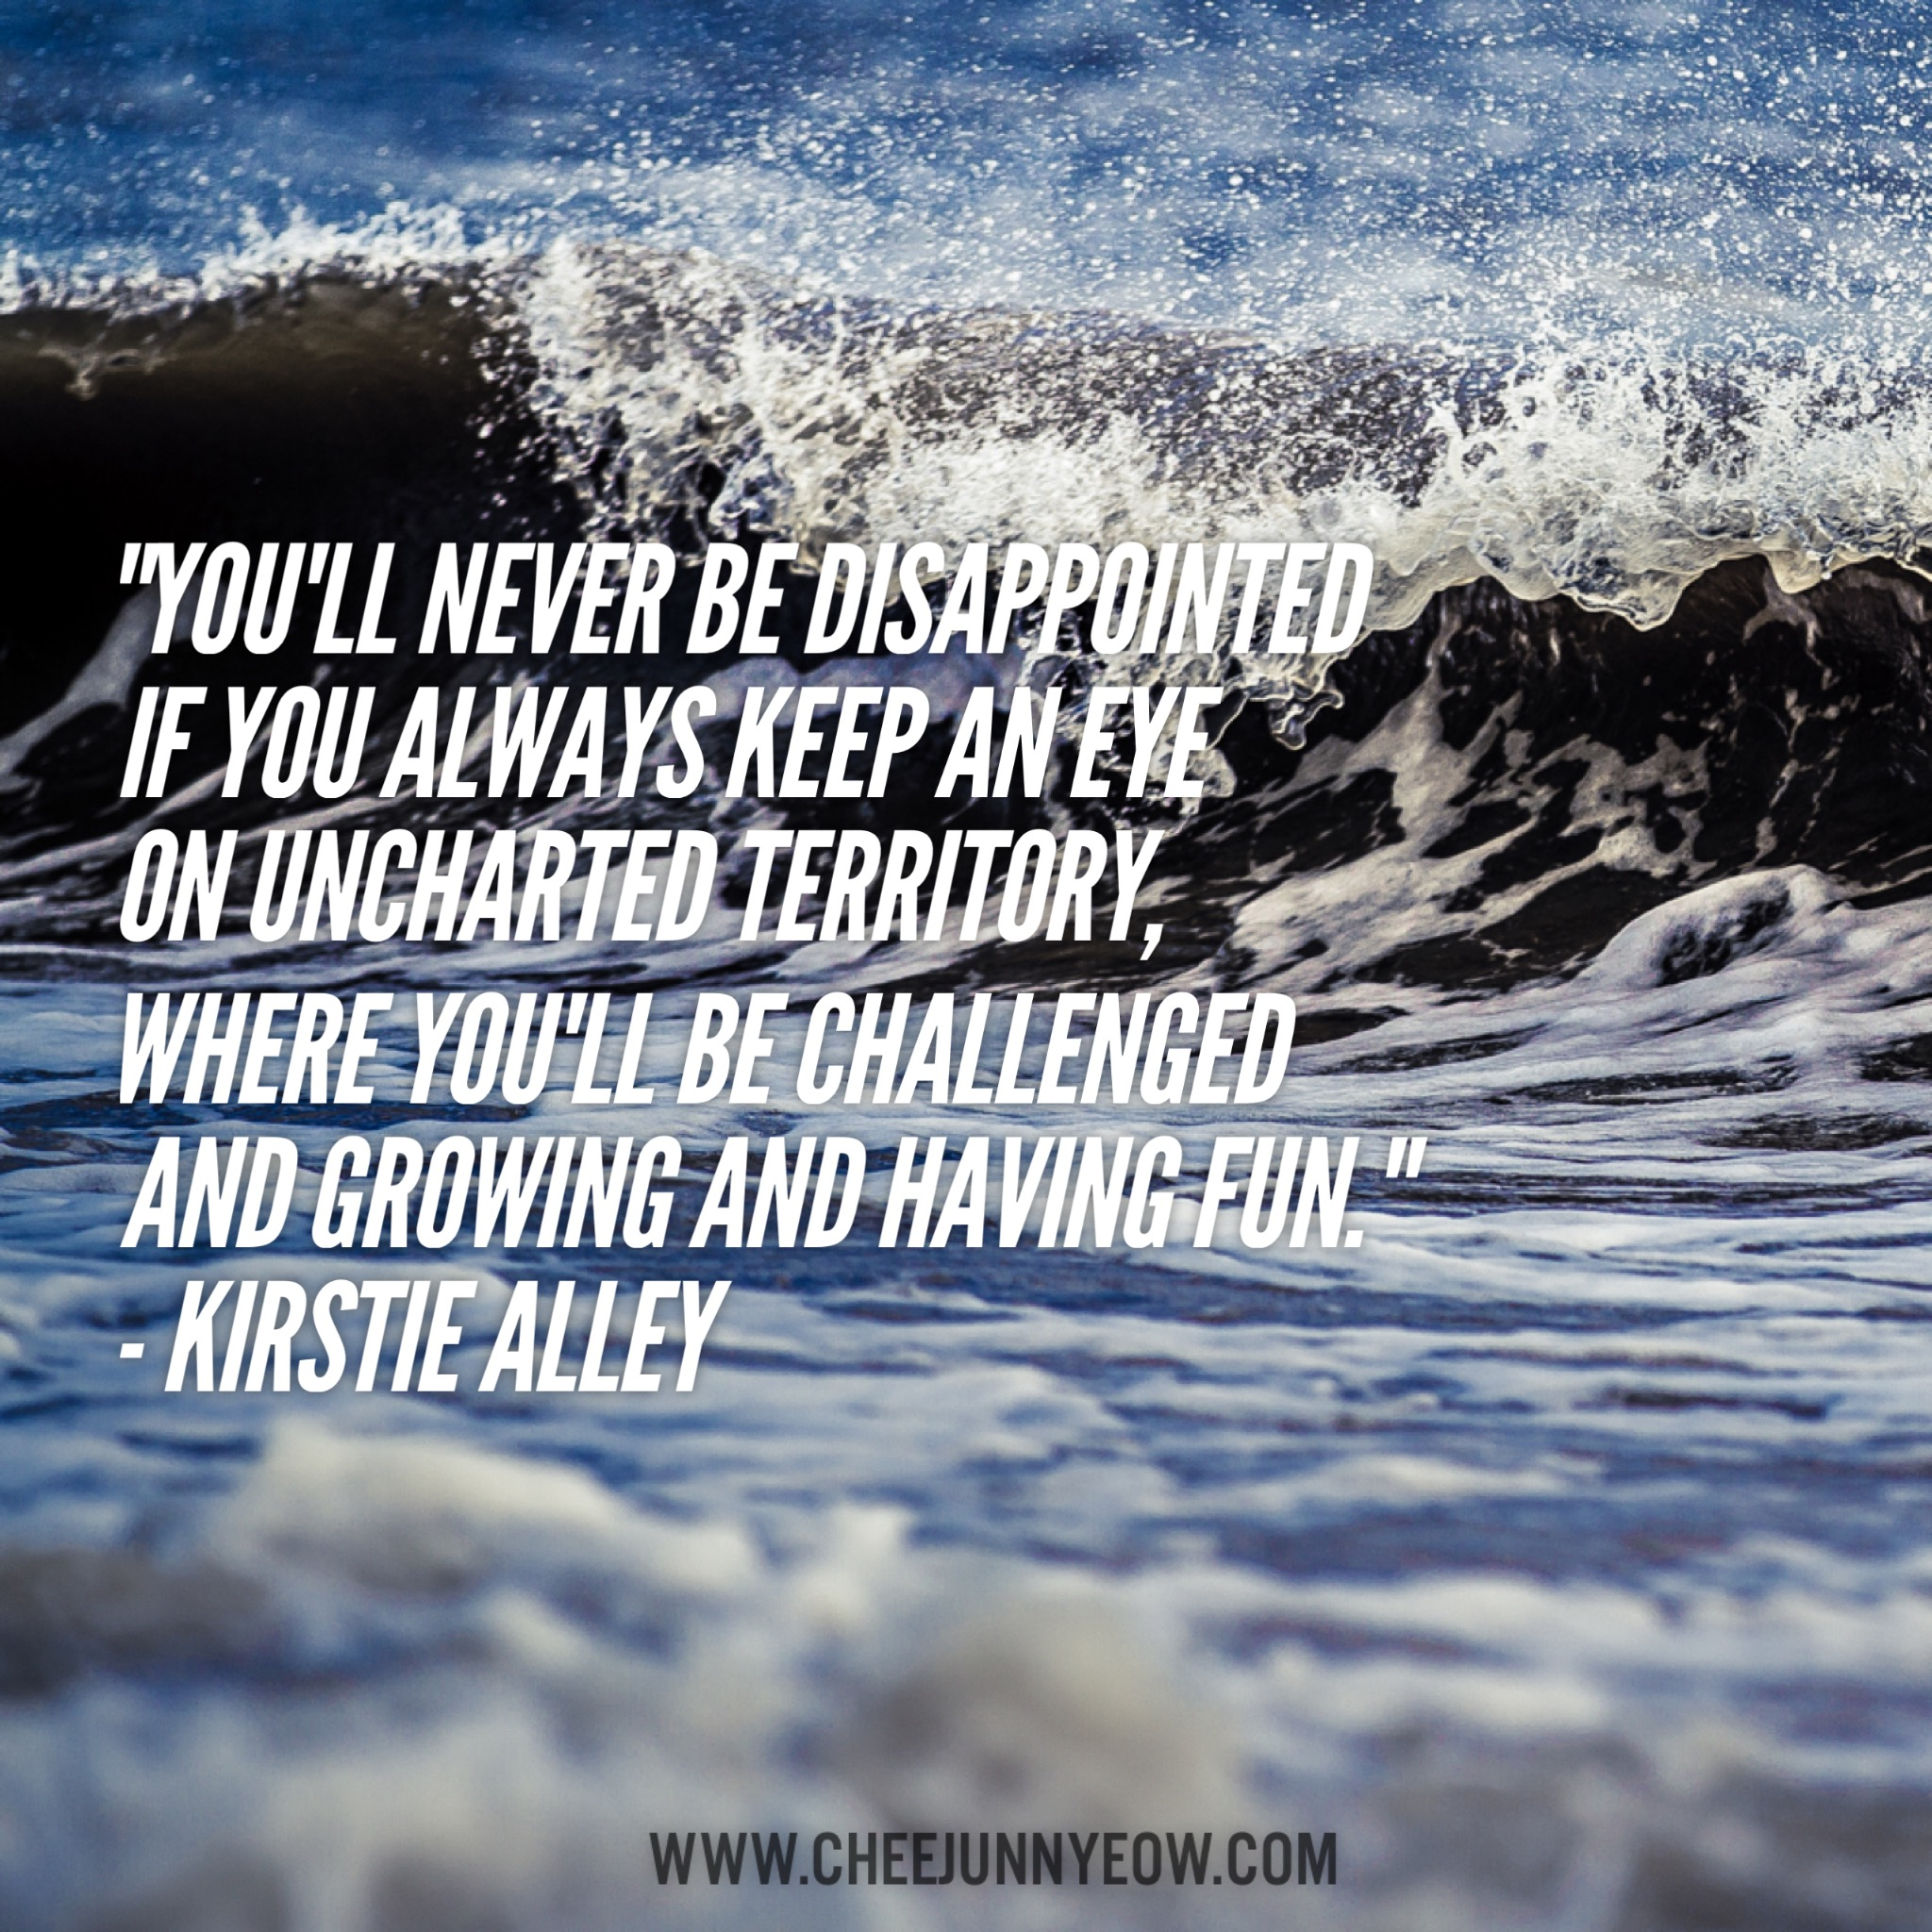 you'll never be disappointed if you always keep an eye on uncharted territory